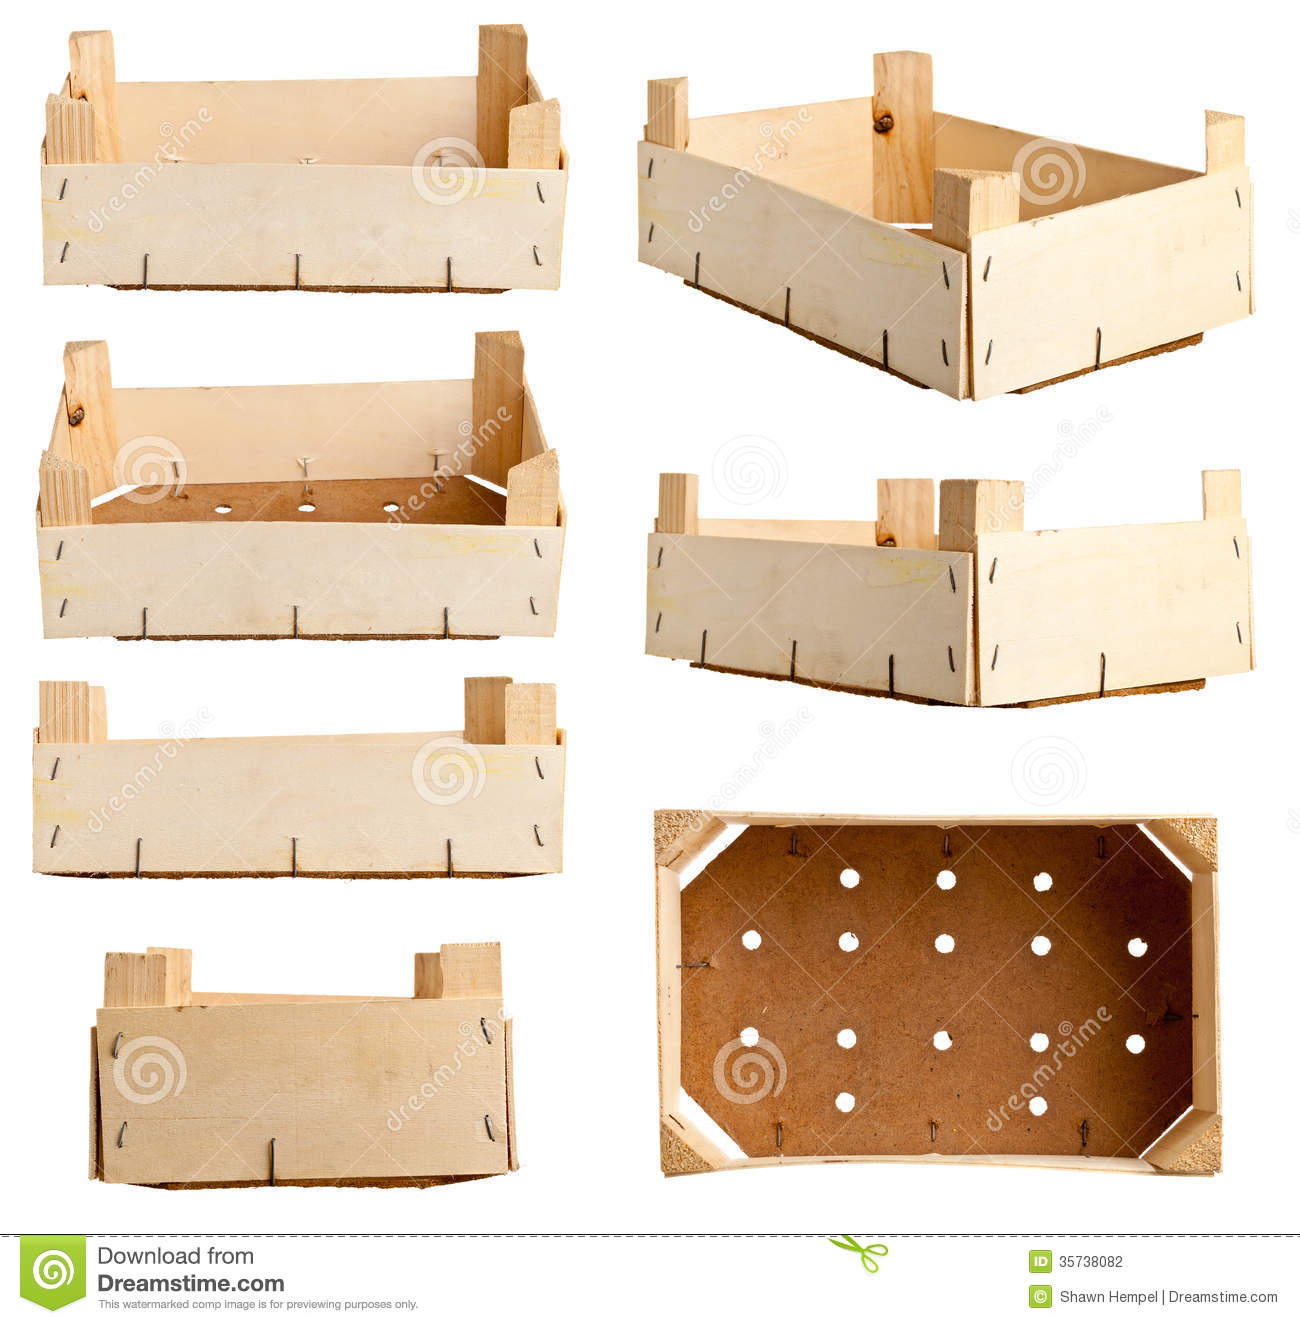 Wooden Crate Stock Photo Image Of Merchandise Packaging